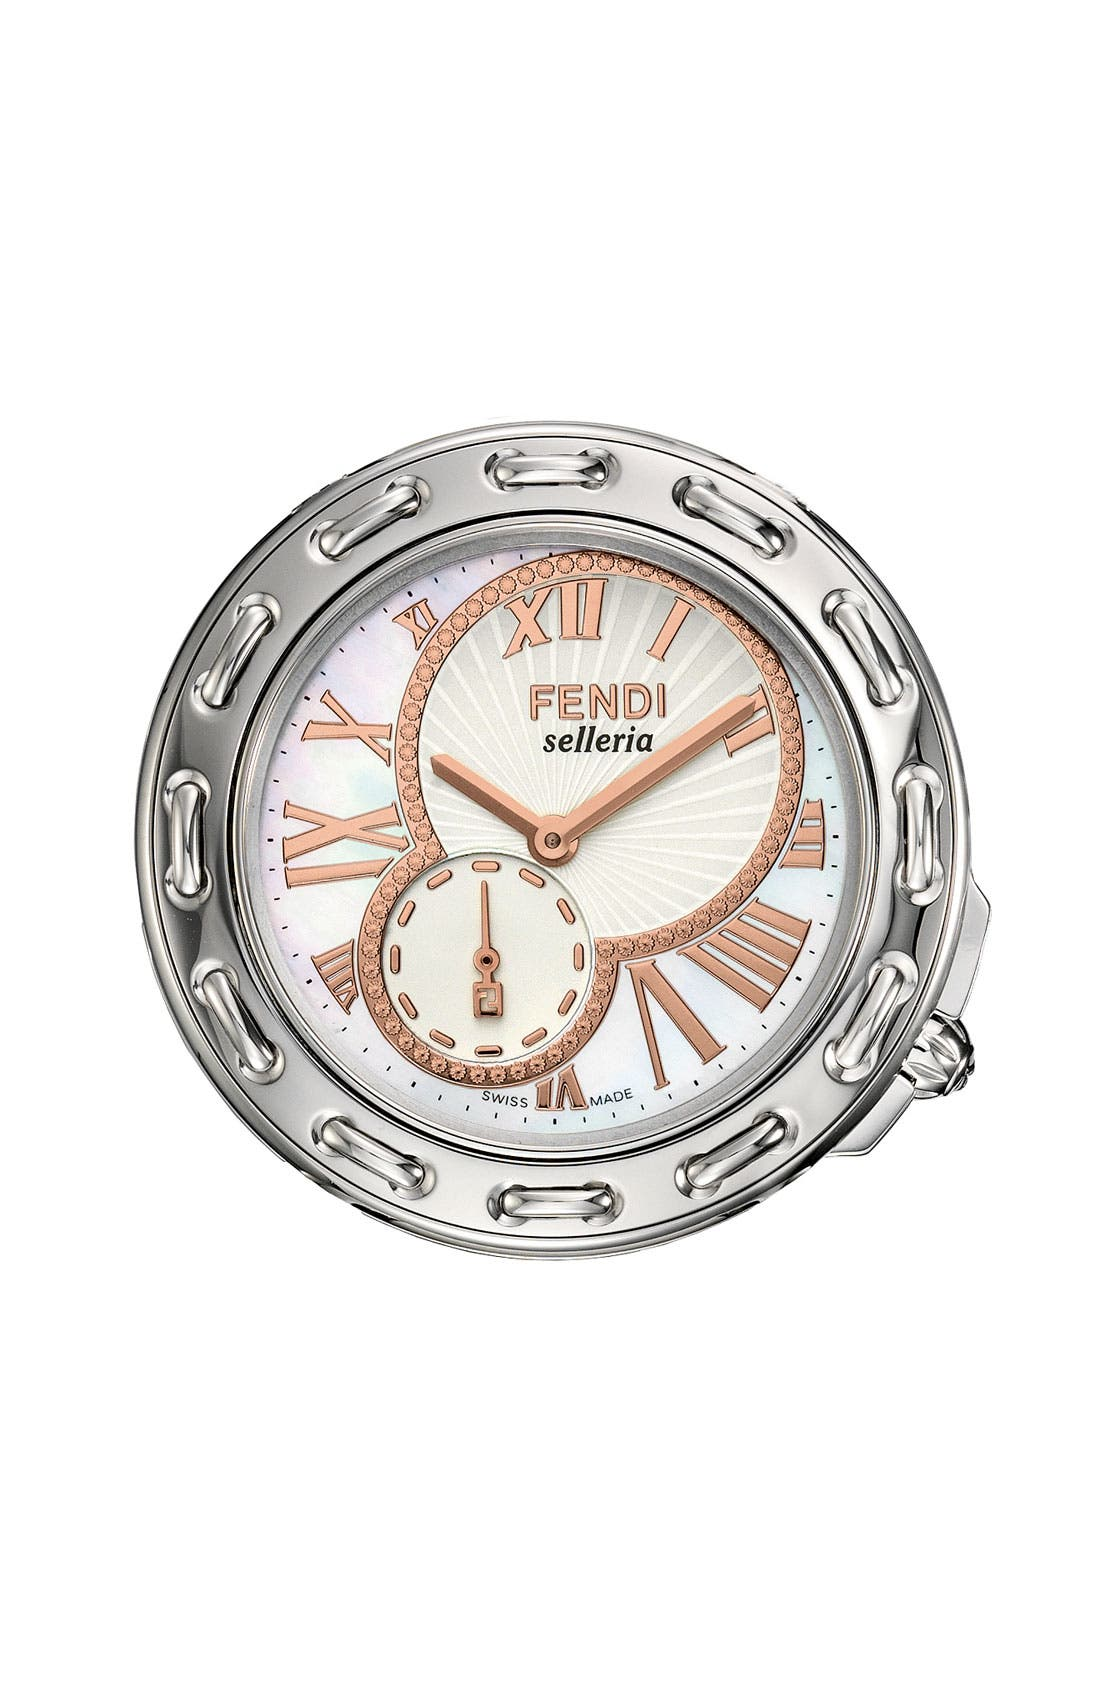 Main Image - Fendi 'Selleria' Round Watch Case, 37mm